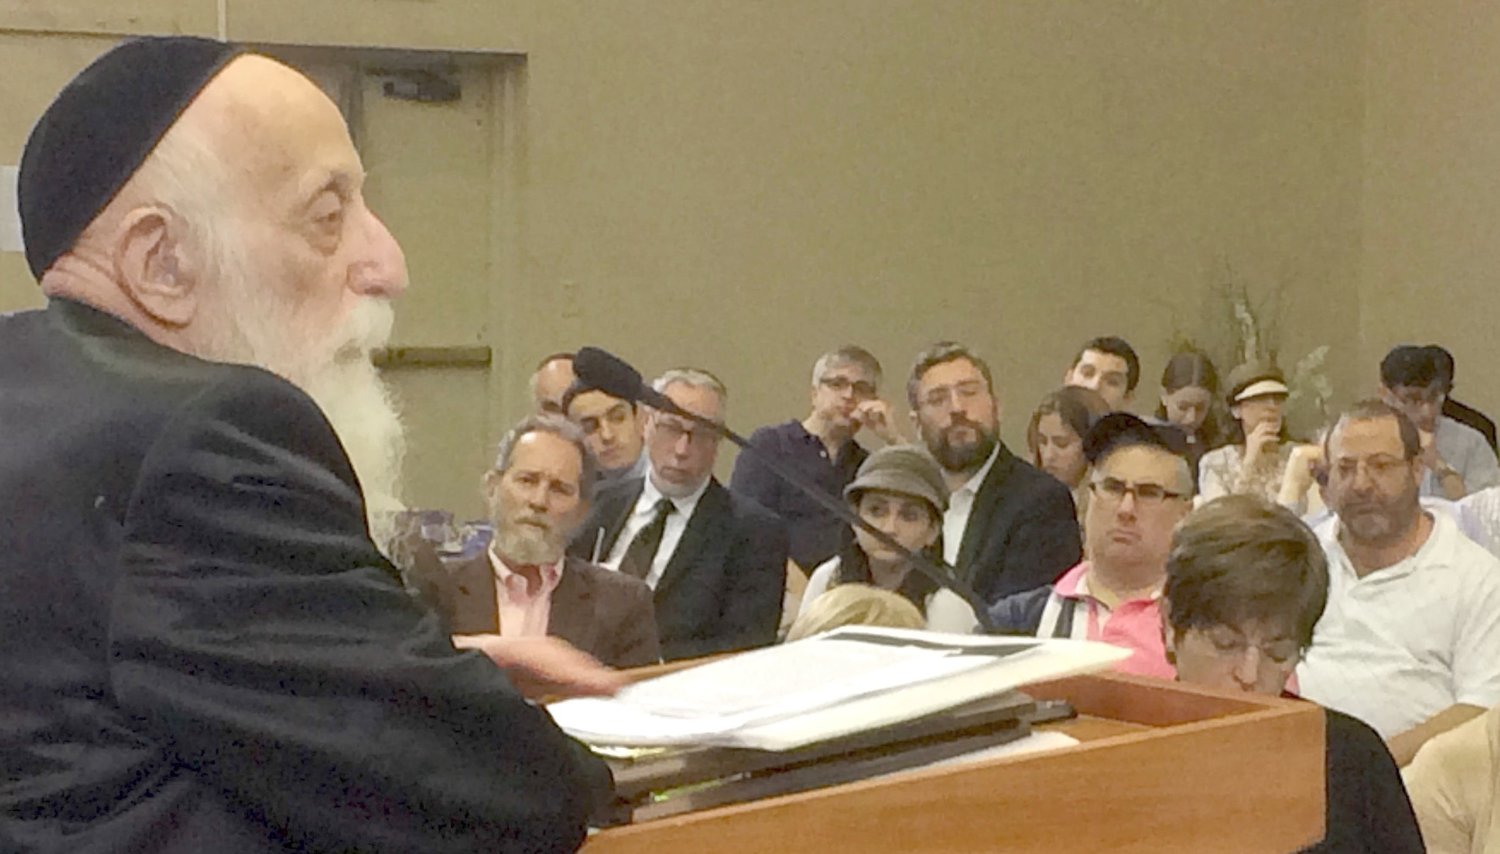 Rabbi Dr. Abraham Twerski delivers the keynote address at an education conference hosted in the Young Israel of Woodmere in June 2015.